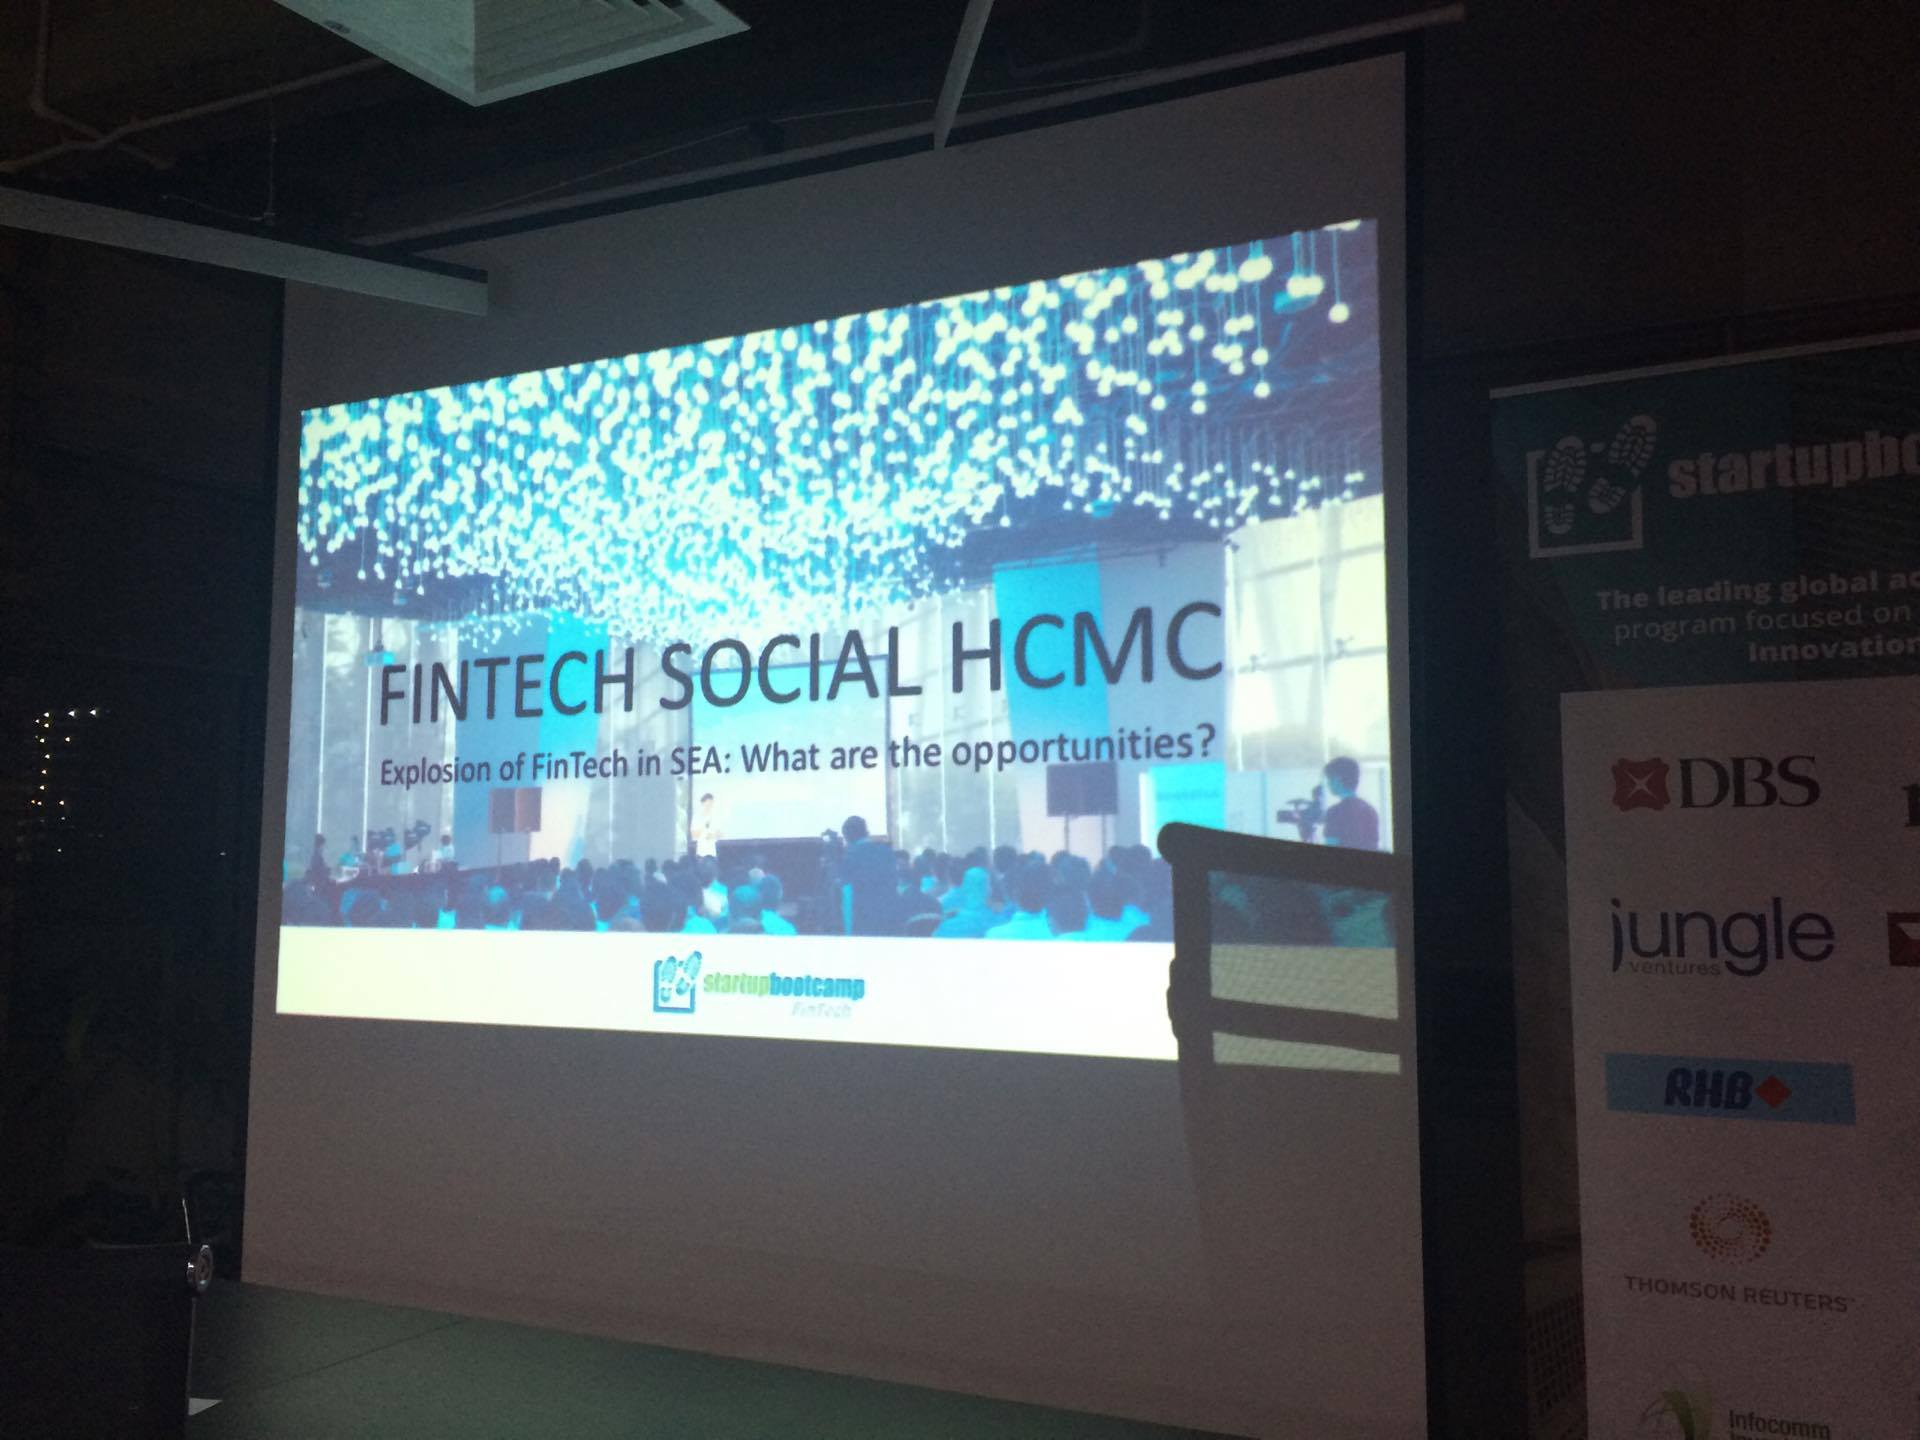 Explosion of FinTech in SEA: What are the opportunities for Ho Chi Minh City?